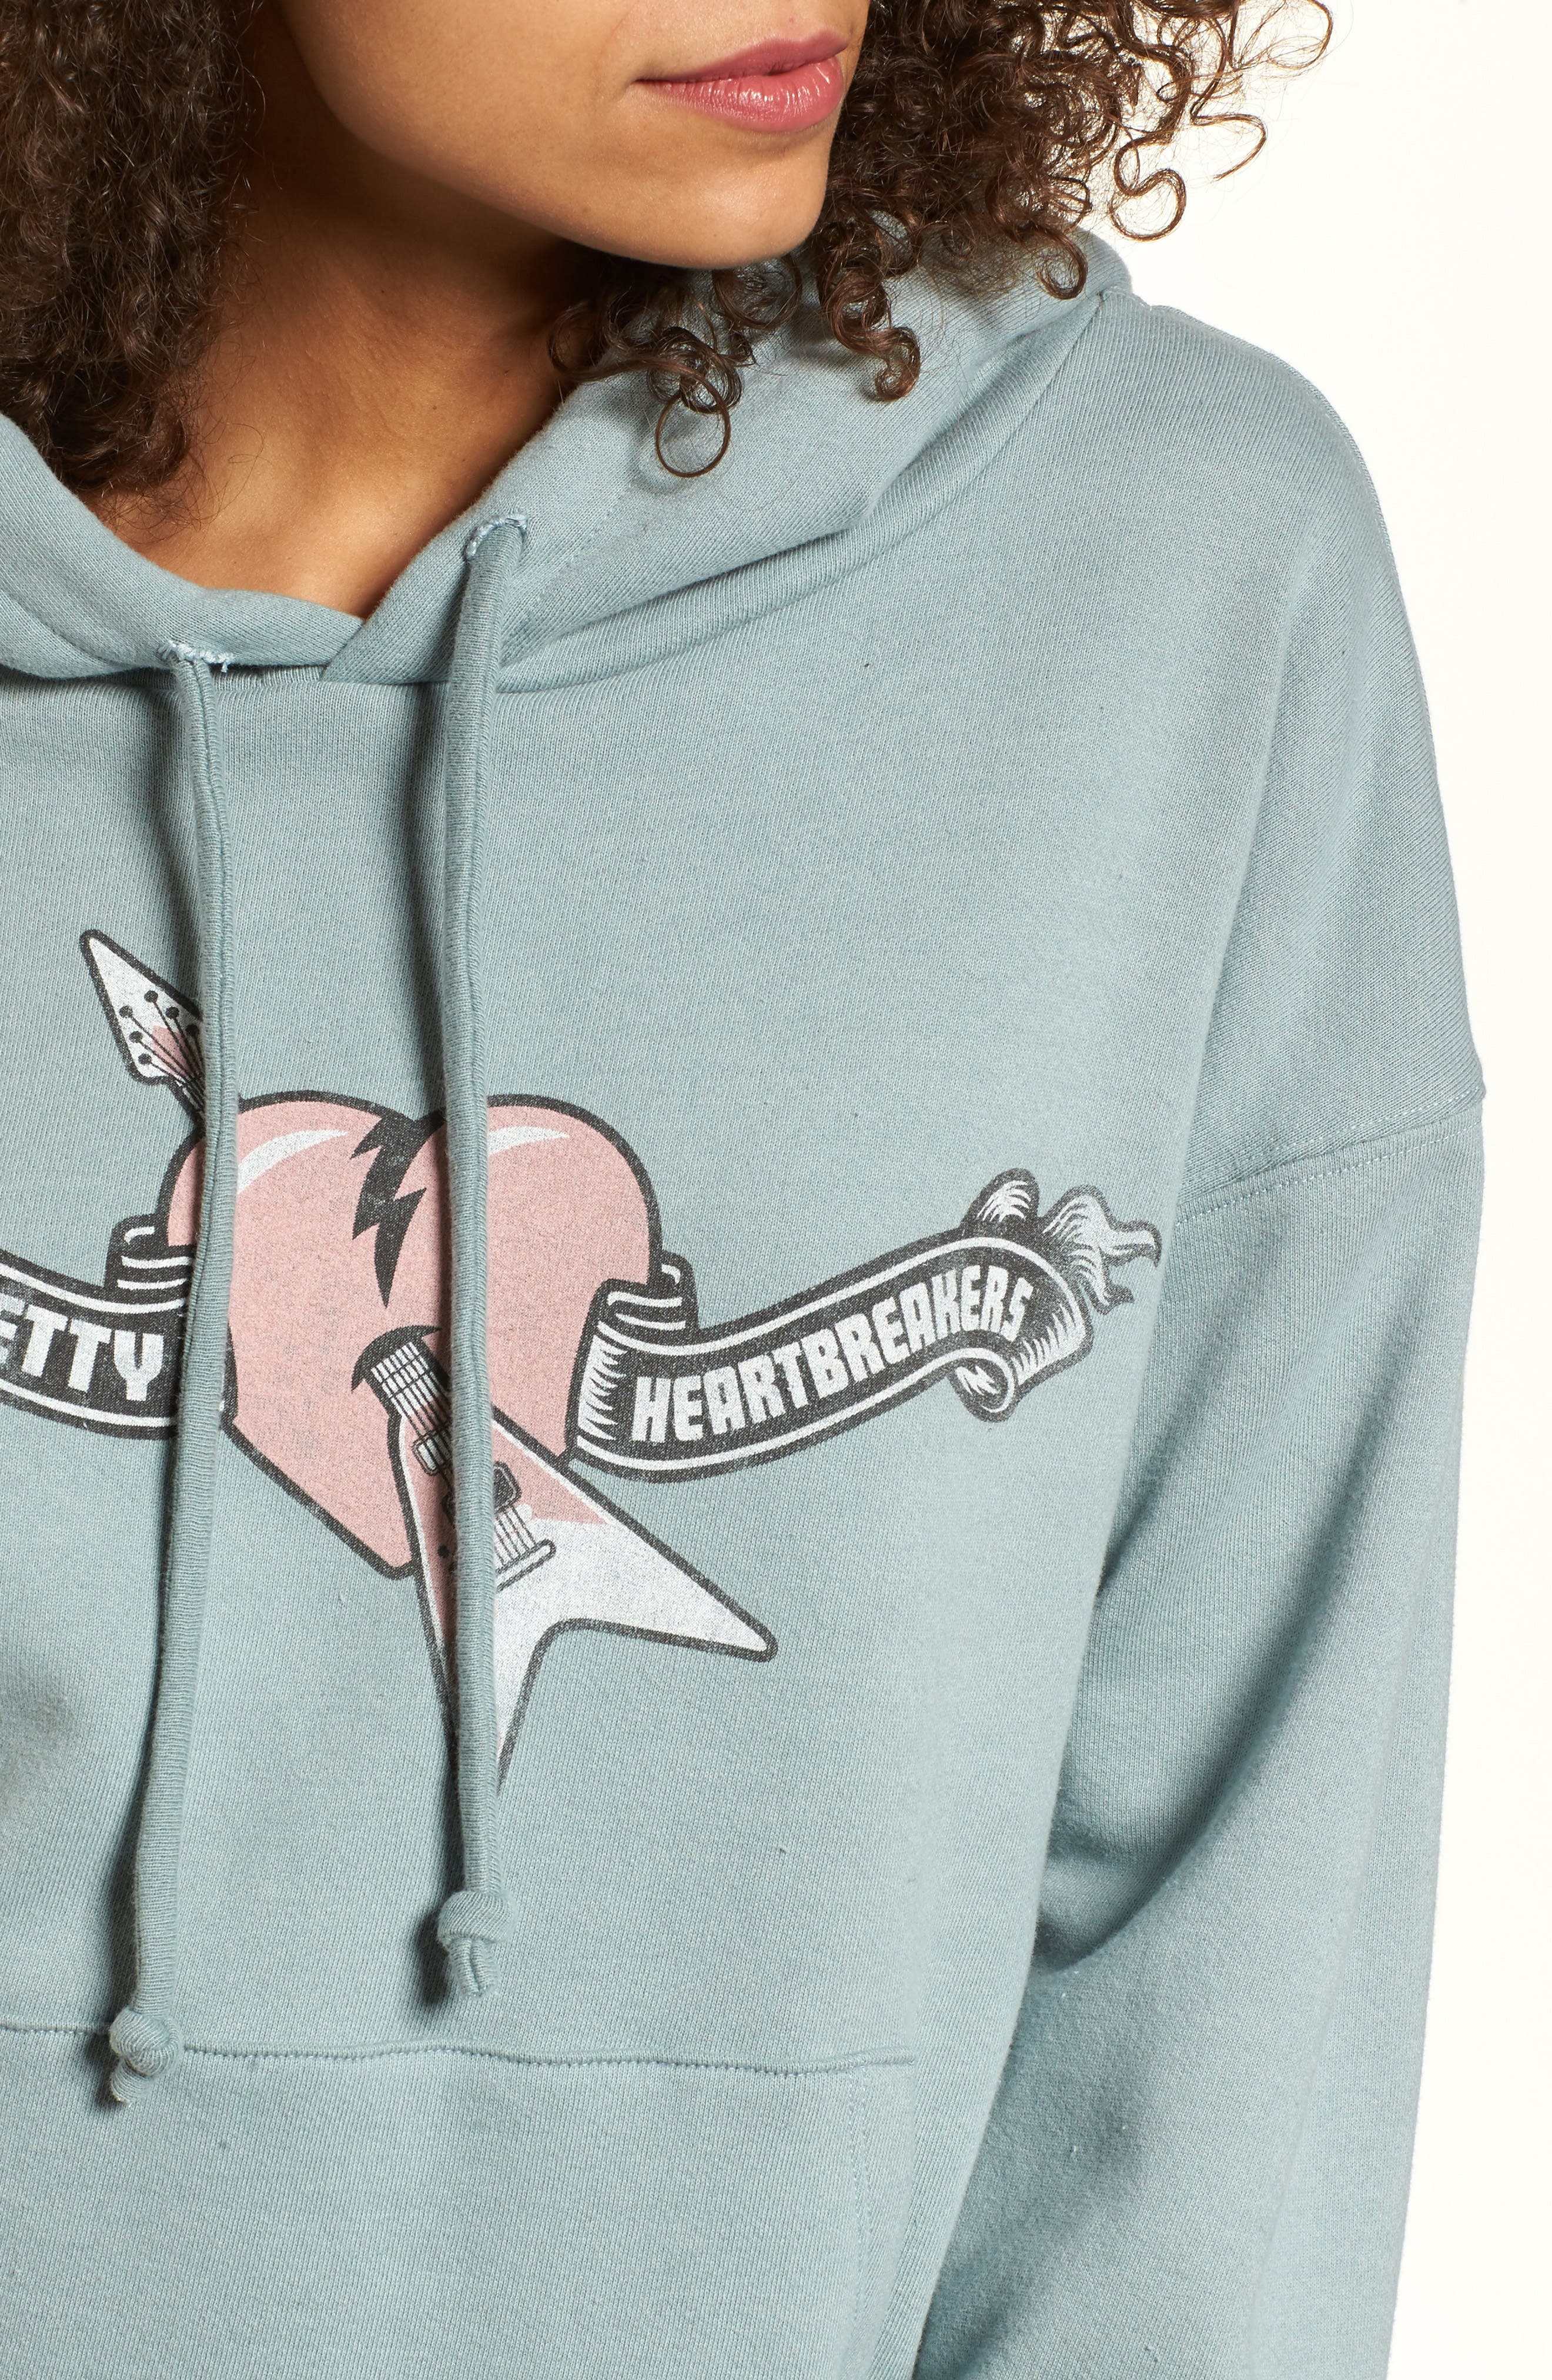 Tom Petty and the Heartbreakers Hoodie,                             Alternate thumbnail 4, color,                             400